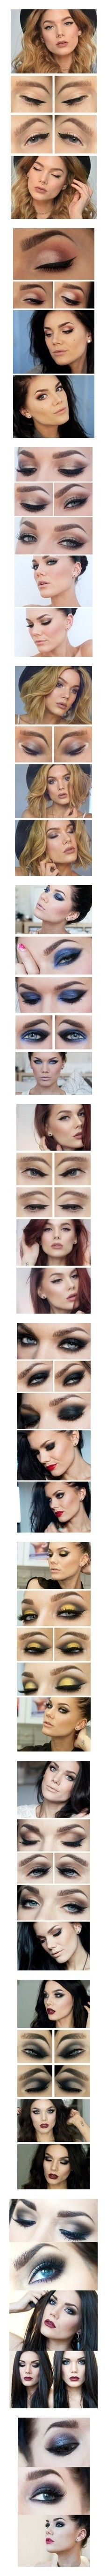 """Makeup (Linda Hallberg) part 1"" by mariasamanta ❤ liked on Polyvore featuring beautiful and makeup"